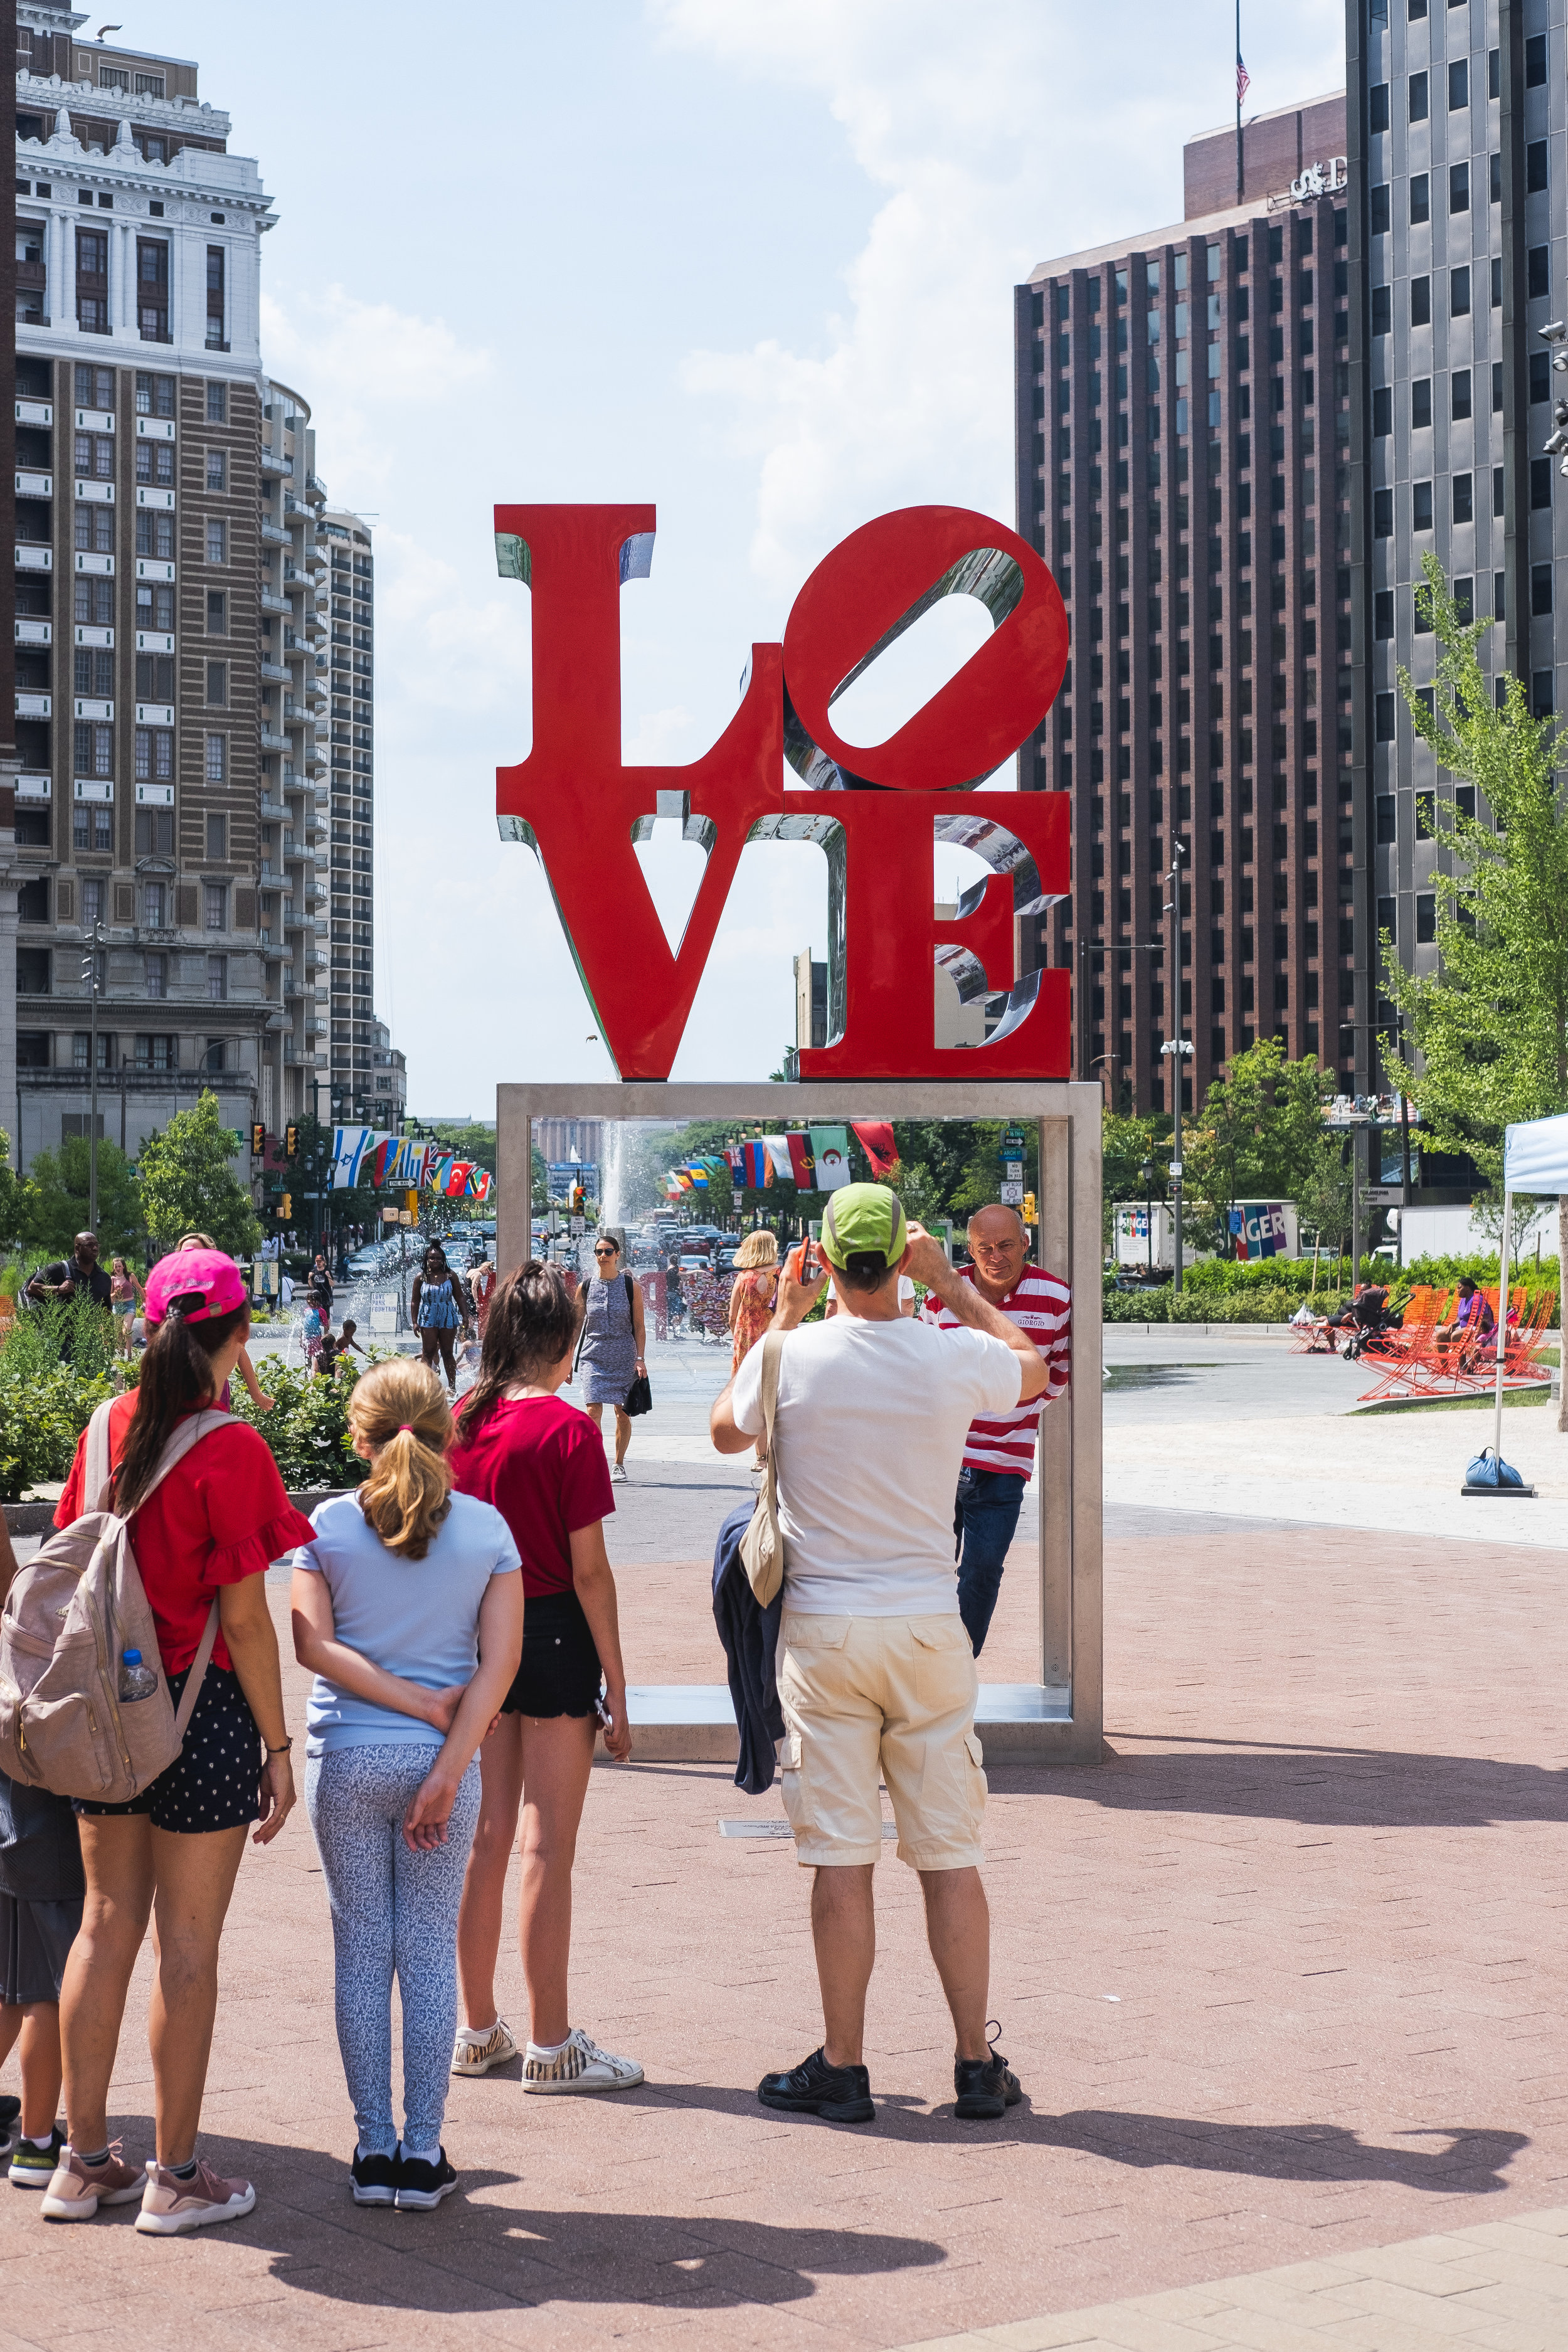 2019_LOVE PARK STATUE_ACTIVITES_THE PHILLY CHECKLIST-1.jpg